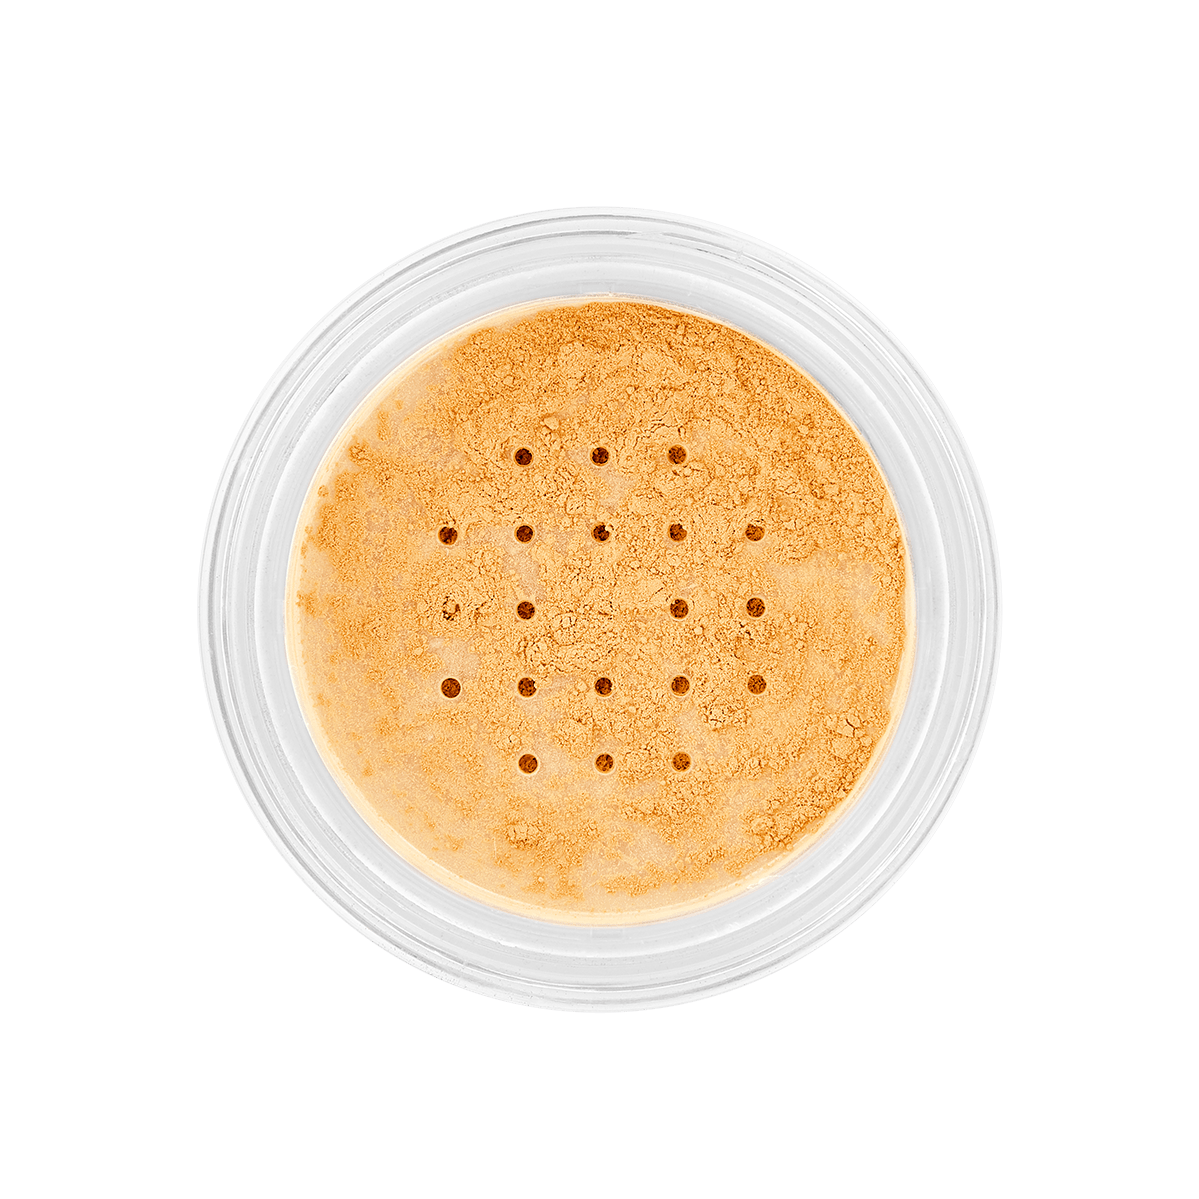 collab-set-the-stage-ultra-fine-loose-setting-powder-almondcaramel-closed.png